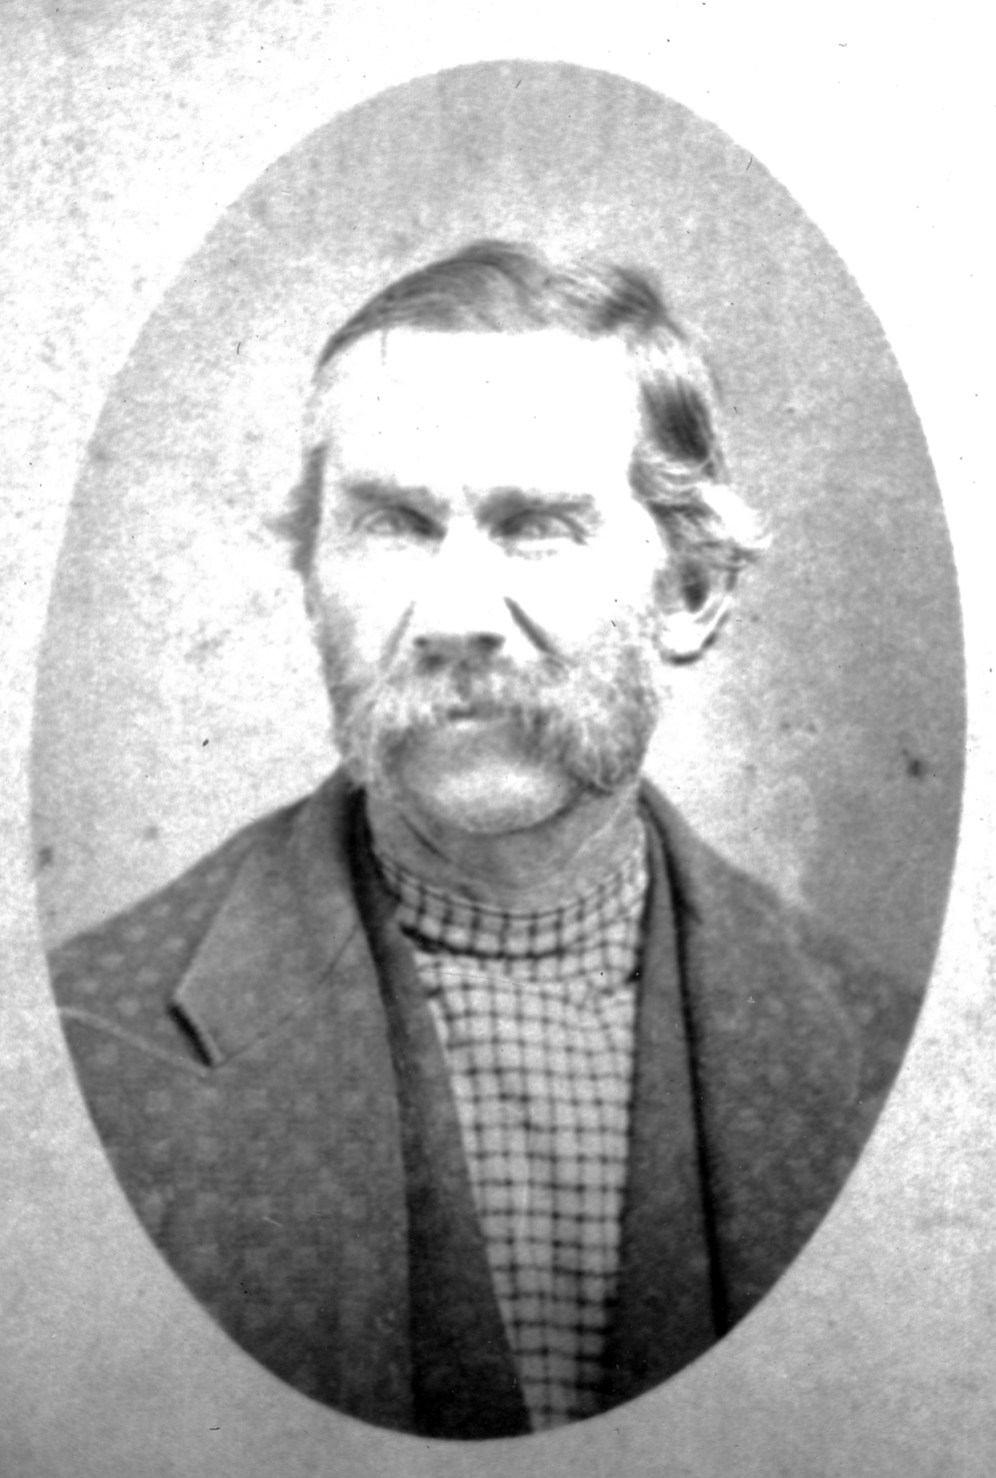 Fayette Cook (1829 - 1900) is the father of my mother's father's mother's mother. He's my Great Great Great Grandfather.